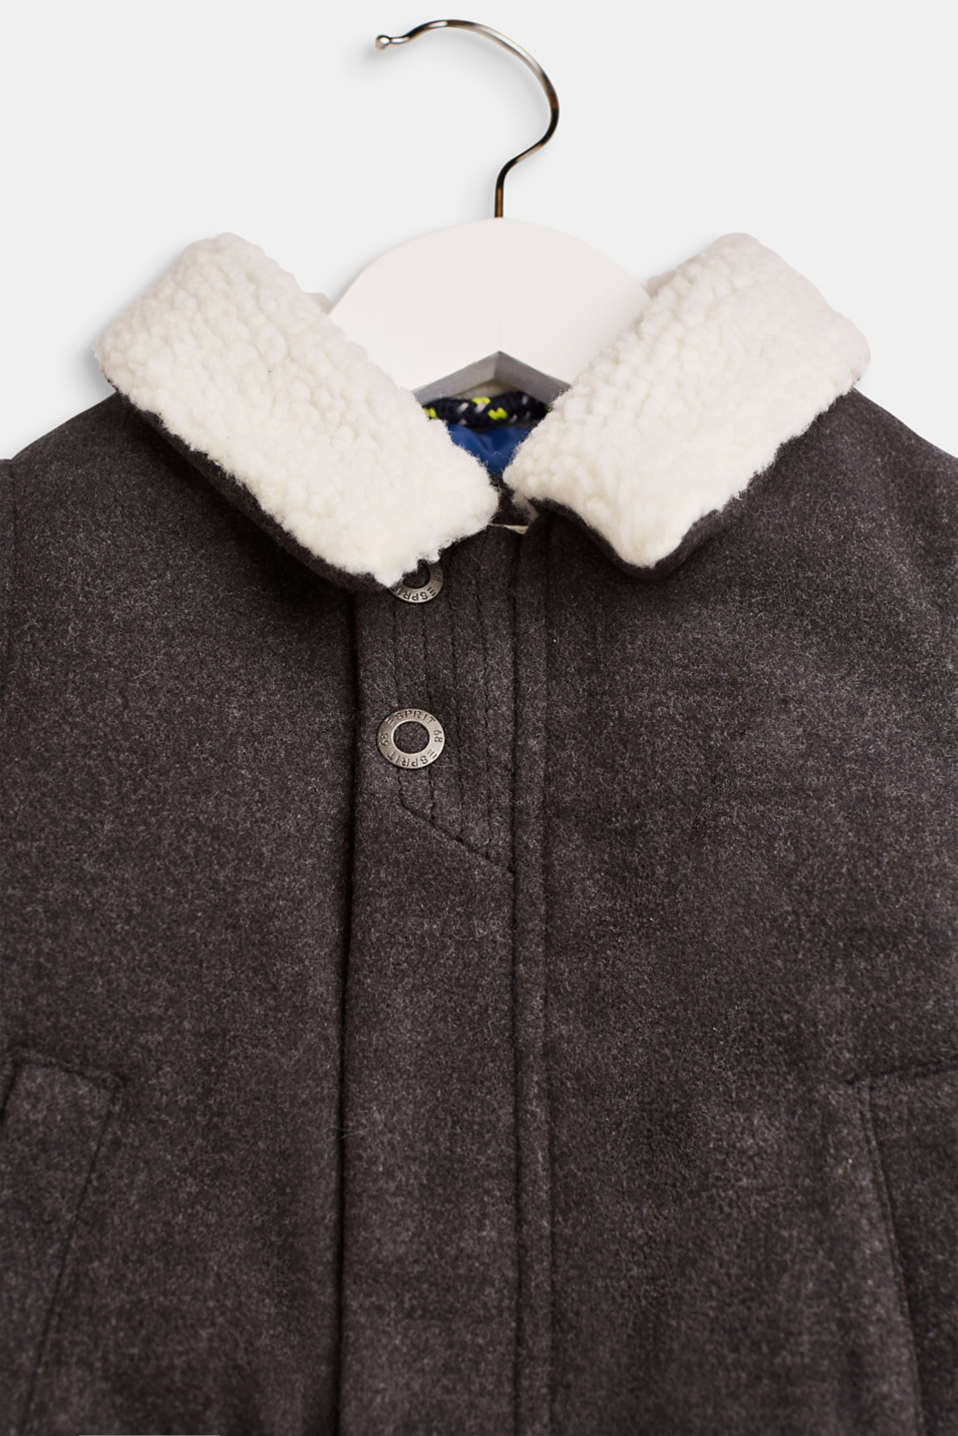 Outdoor jacket with a teddy fur collar, LCDARK HEATHER G, detail image number 3